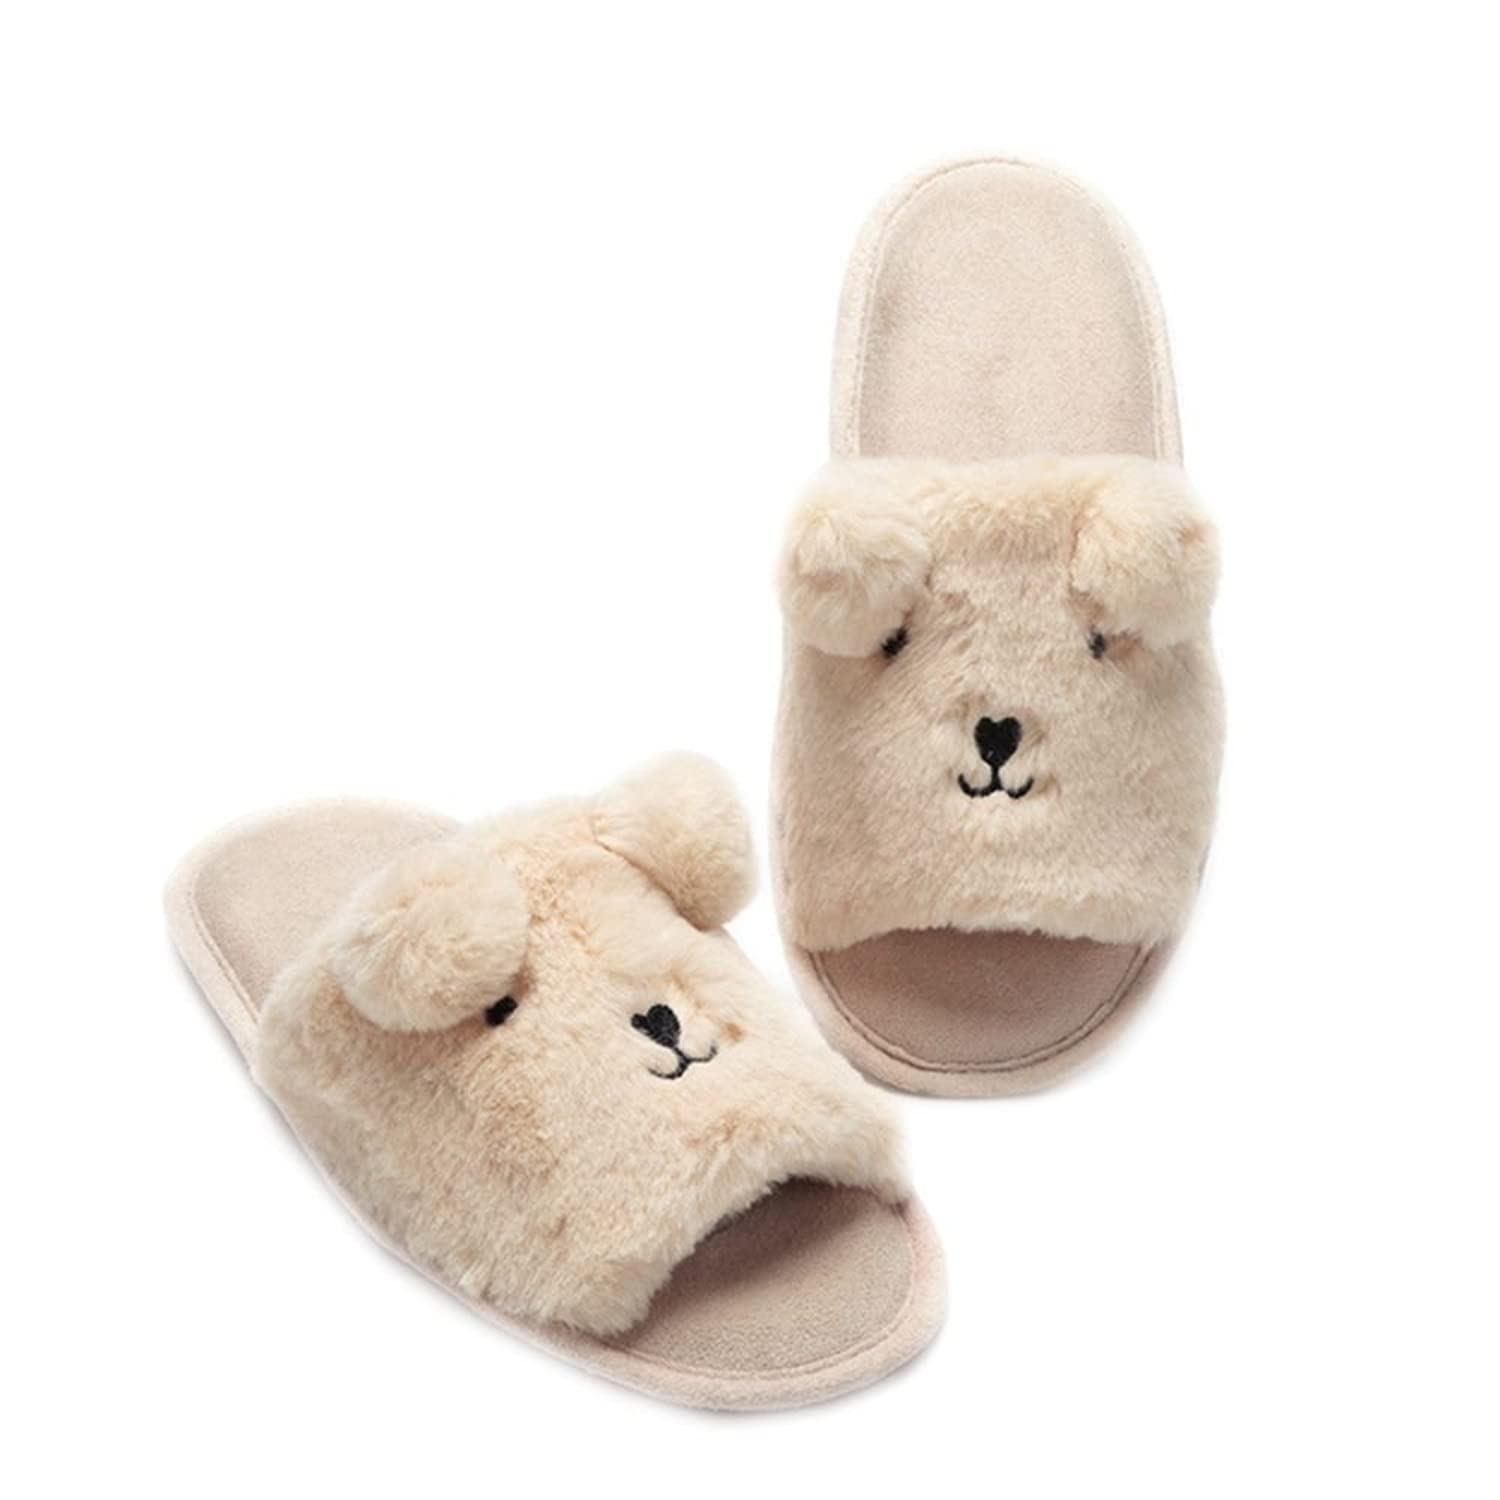 Women's Open-toe Home Slippers Cartoon Bear Warm Plush Soft Sole Indoor Slipper